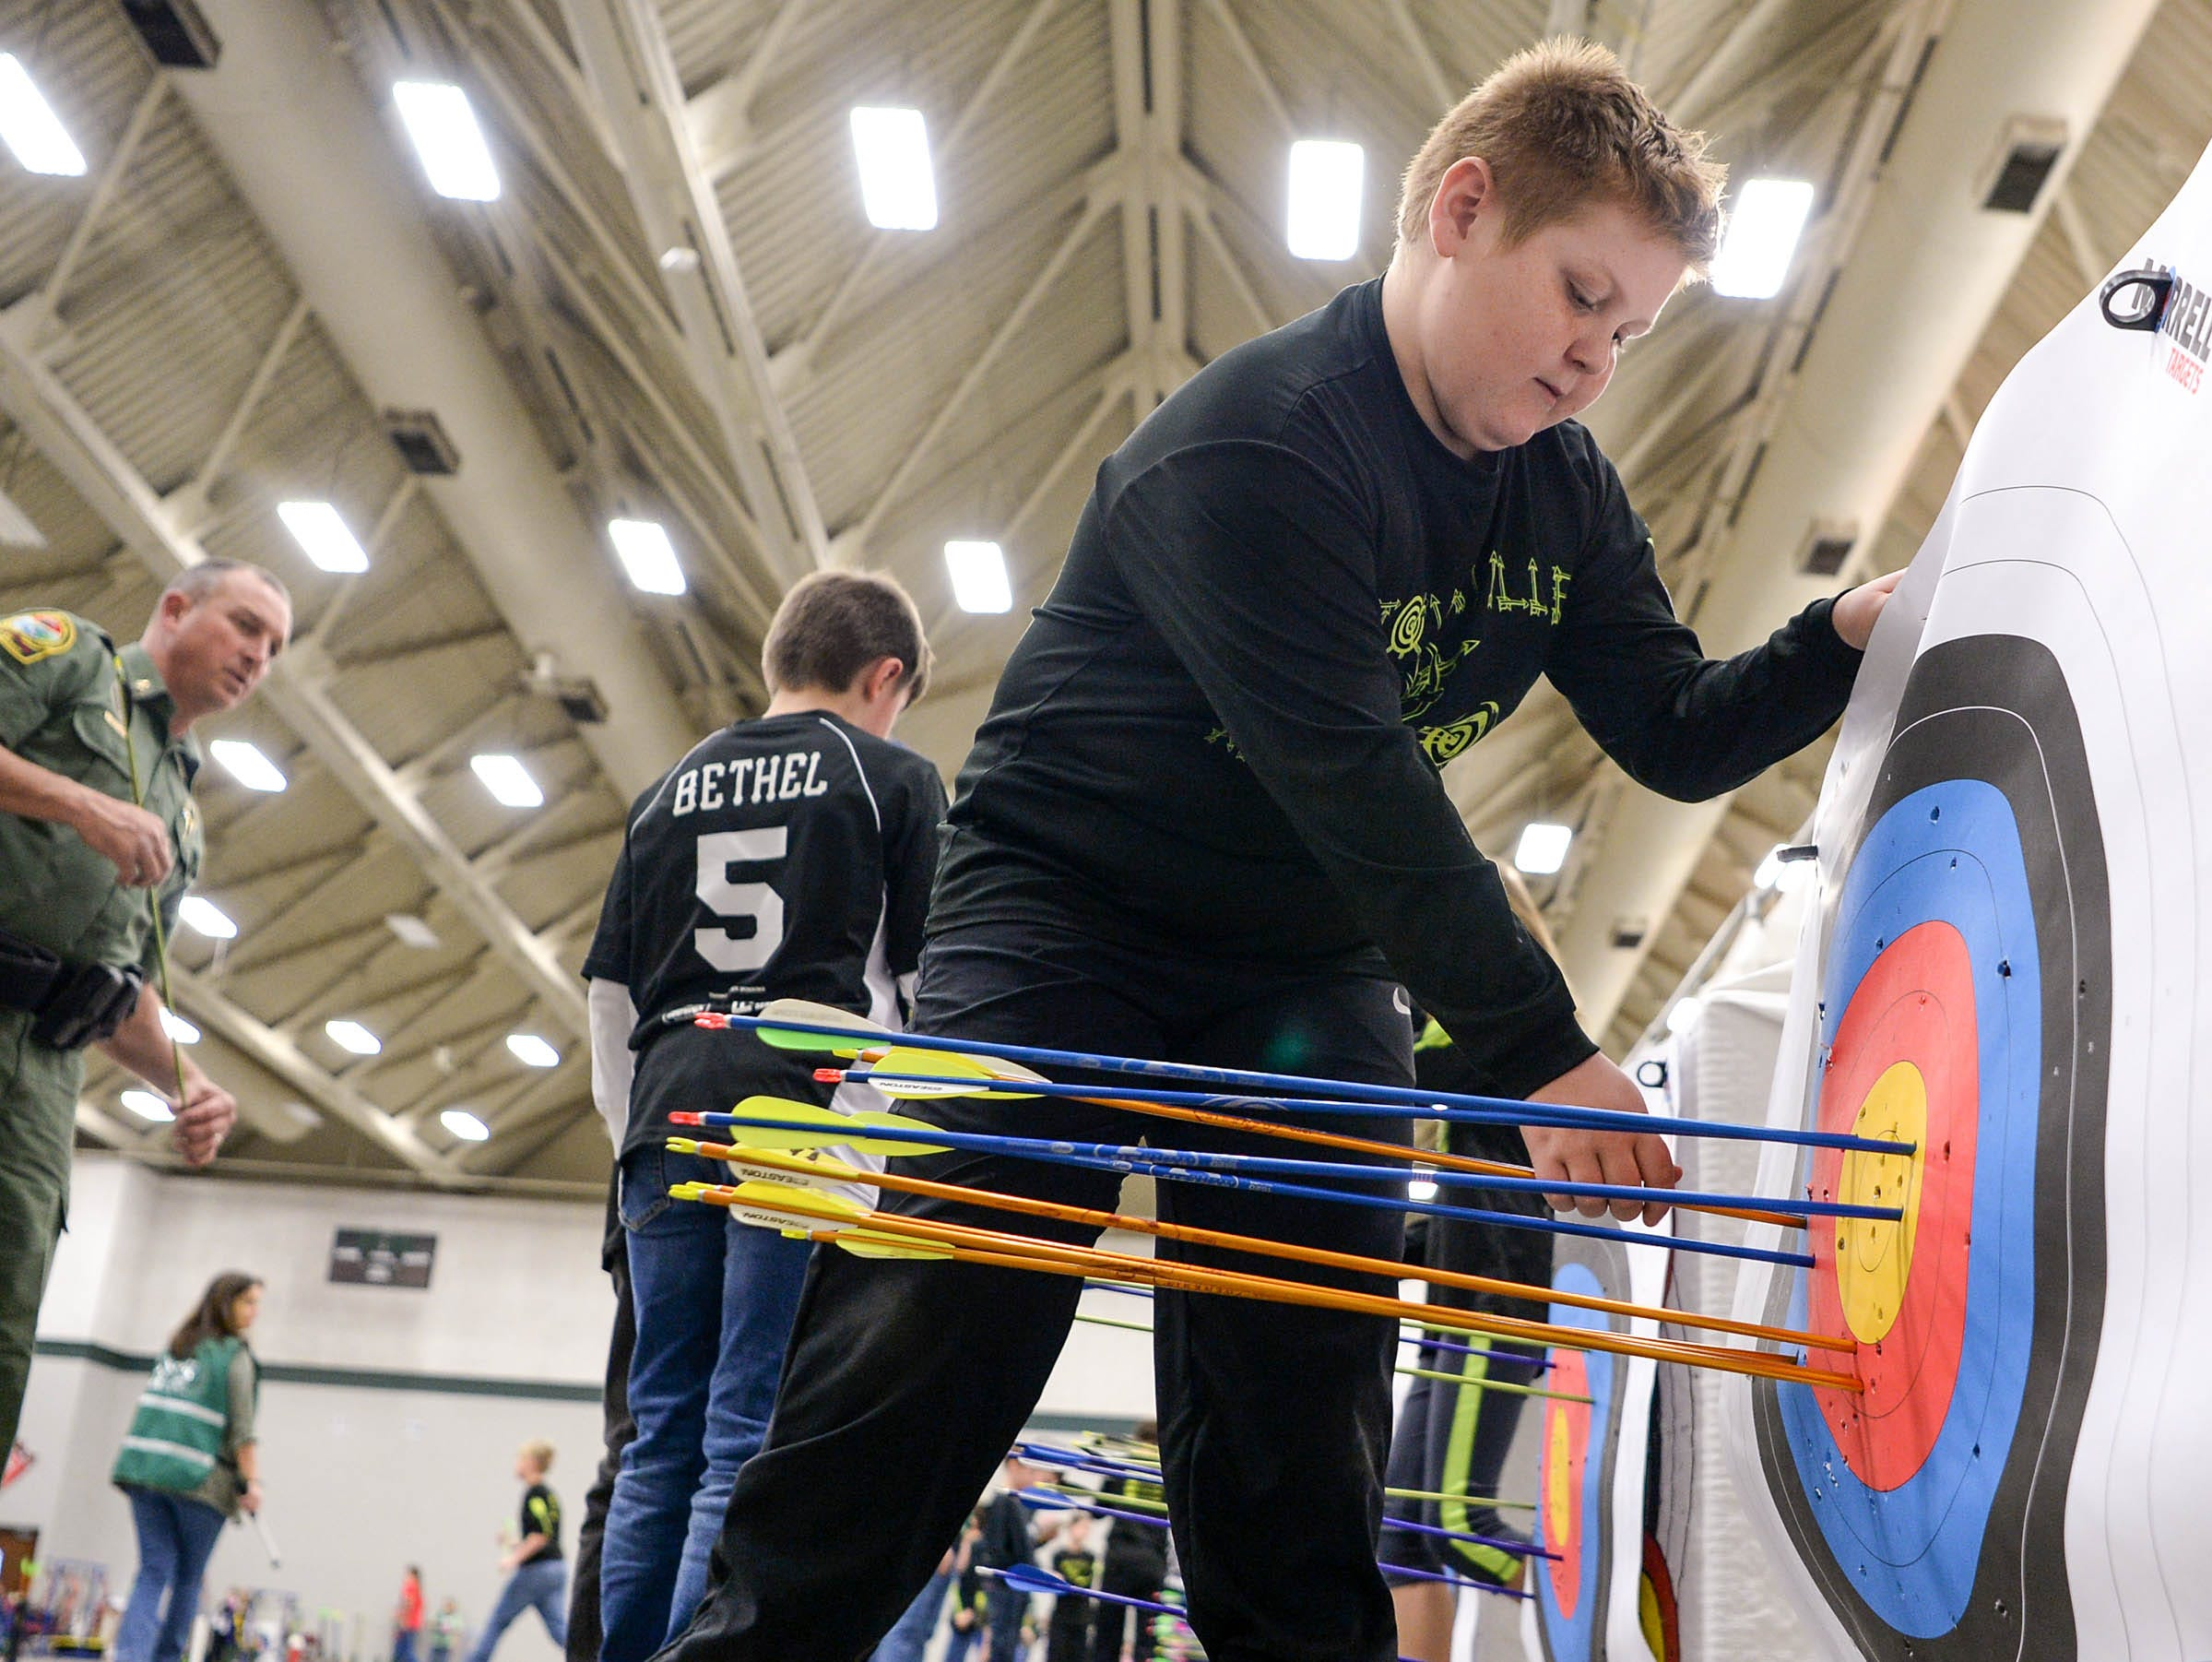 Deaven Alewine, a fourth-grade Townville Elementary School student, pulls one of his five arrow shafts from the target during the South Carolina Department of Natural Resources regional National Archery in the Schools Program (NASP) regional competition at the Anderson Civic Center Wednesday.  The program, which awards $50,000 in scholarships to high school seniors, is a joint venture between state departments of Education and Wildlife. The competition in Anderson, leading up to the state finals March 26-28 in Sumter, had 950 children from 14 elementary and 23 high schools around the state. Pendelton High School finished first in the IBO competition and second in the bullseye for the high school division, while Riverside Middle School in Pendleton finished first in the IBO and bullseye competitions for middle schools.